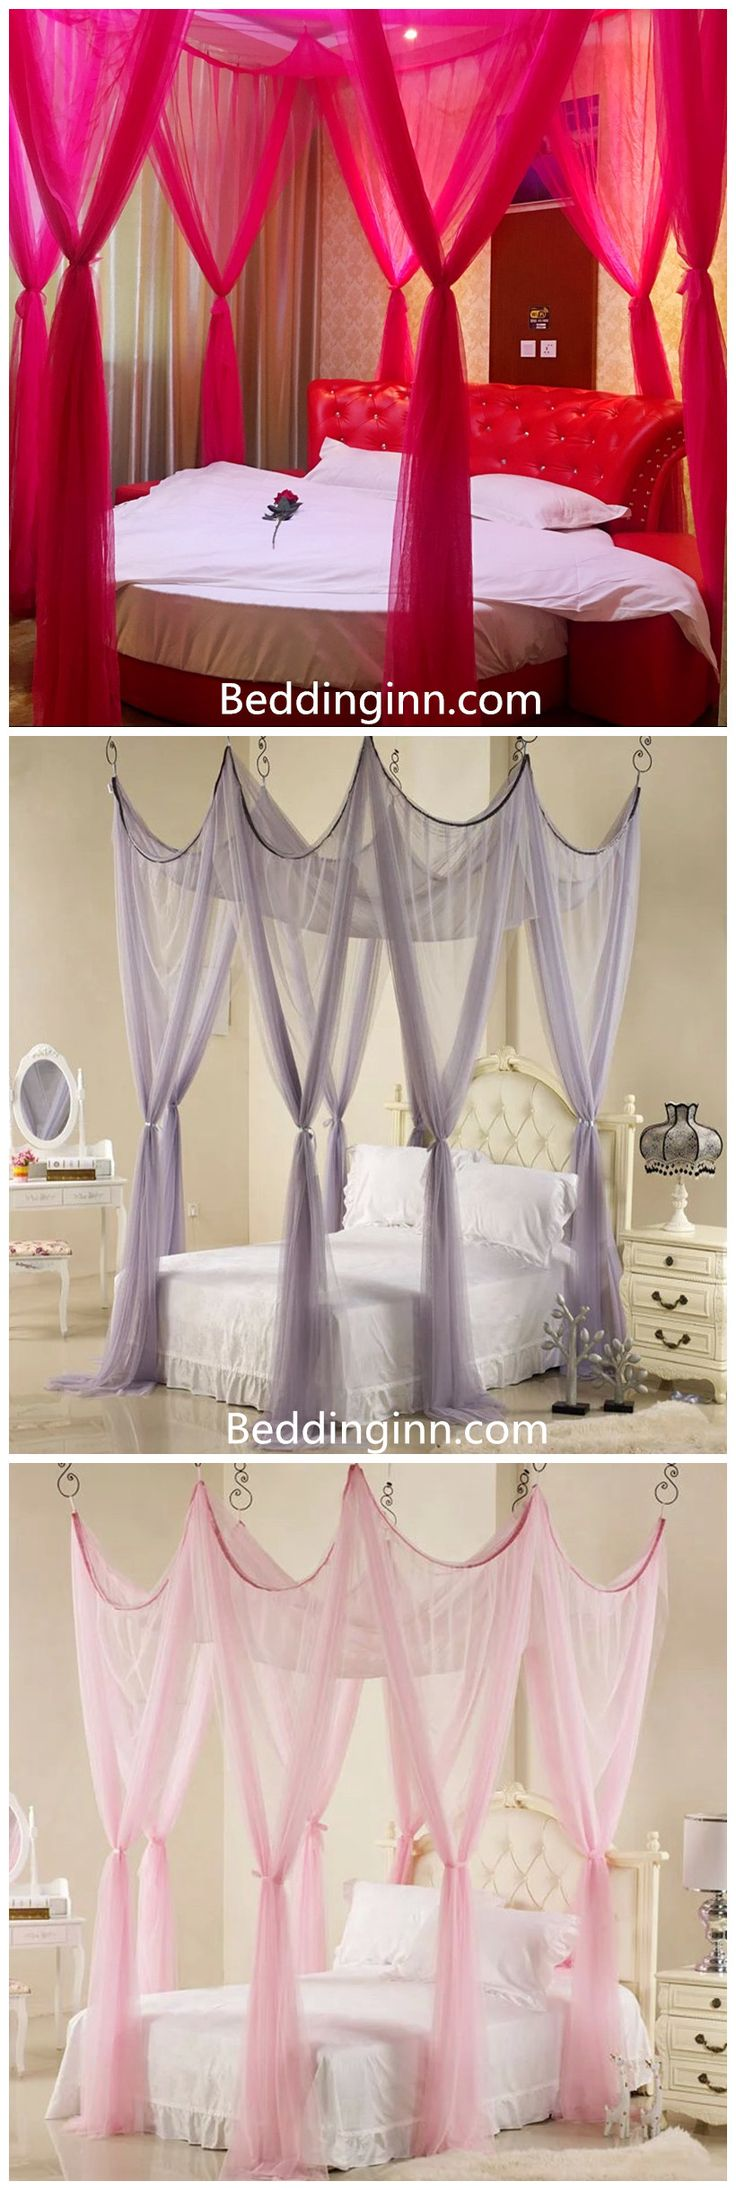 best 25+ teen canopy bed ideas on pinterest | bed canopy lights